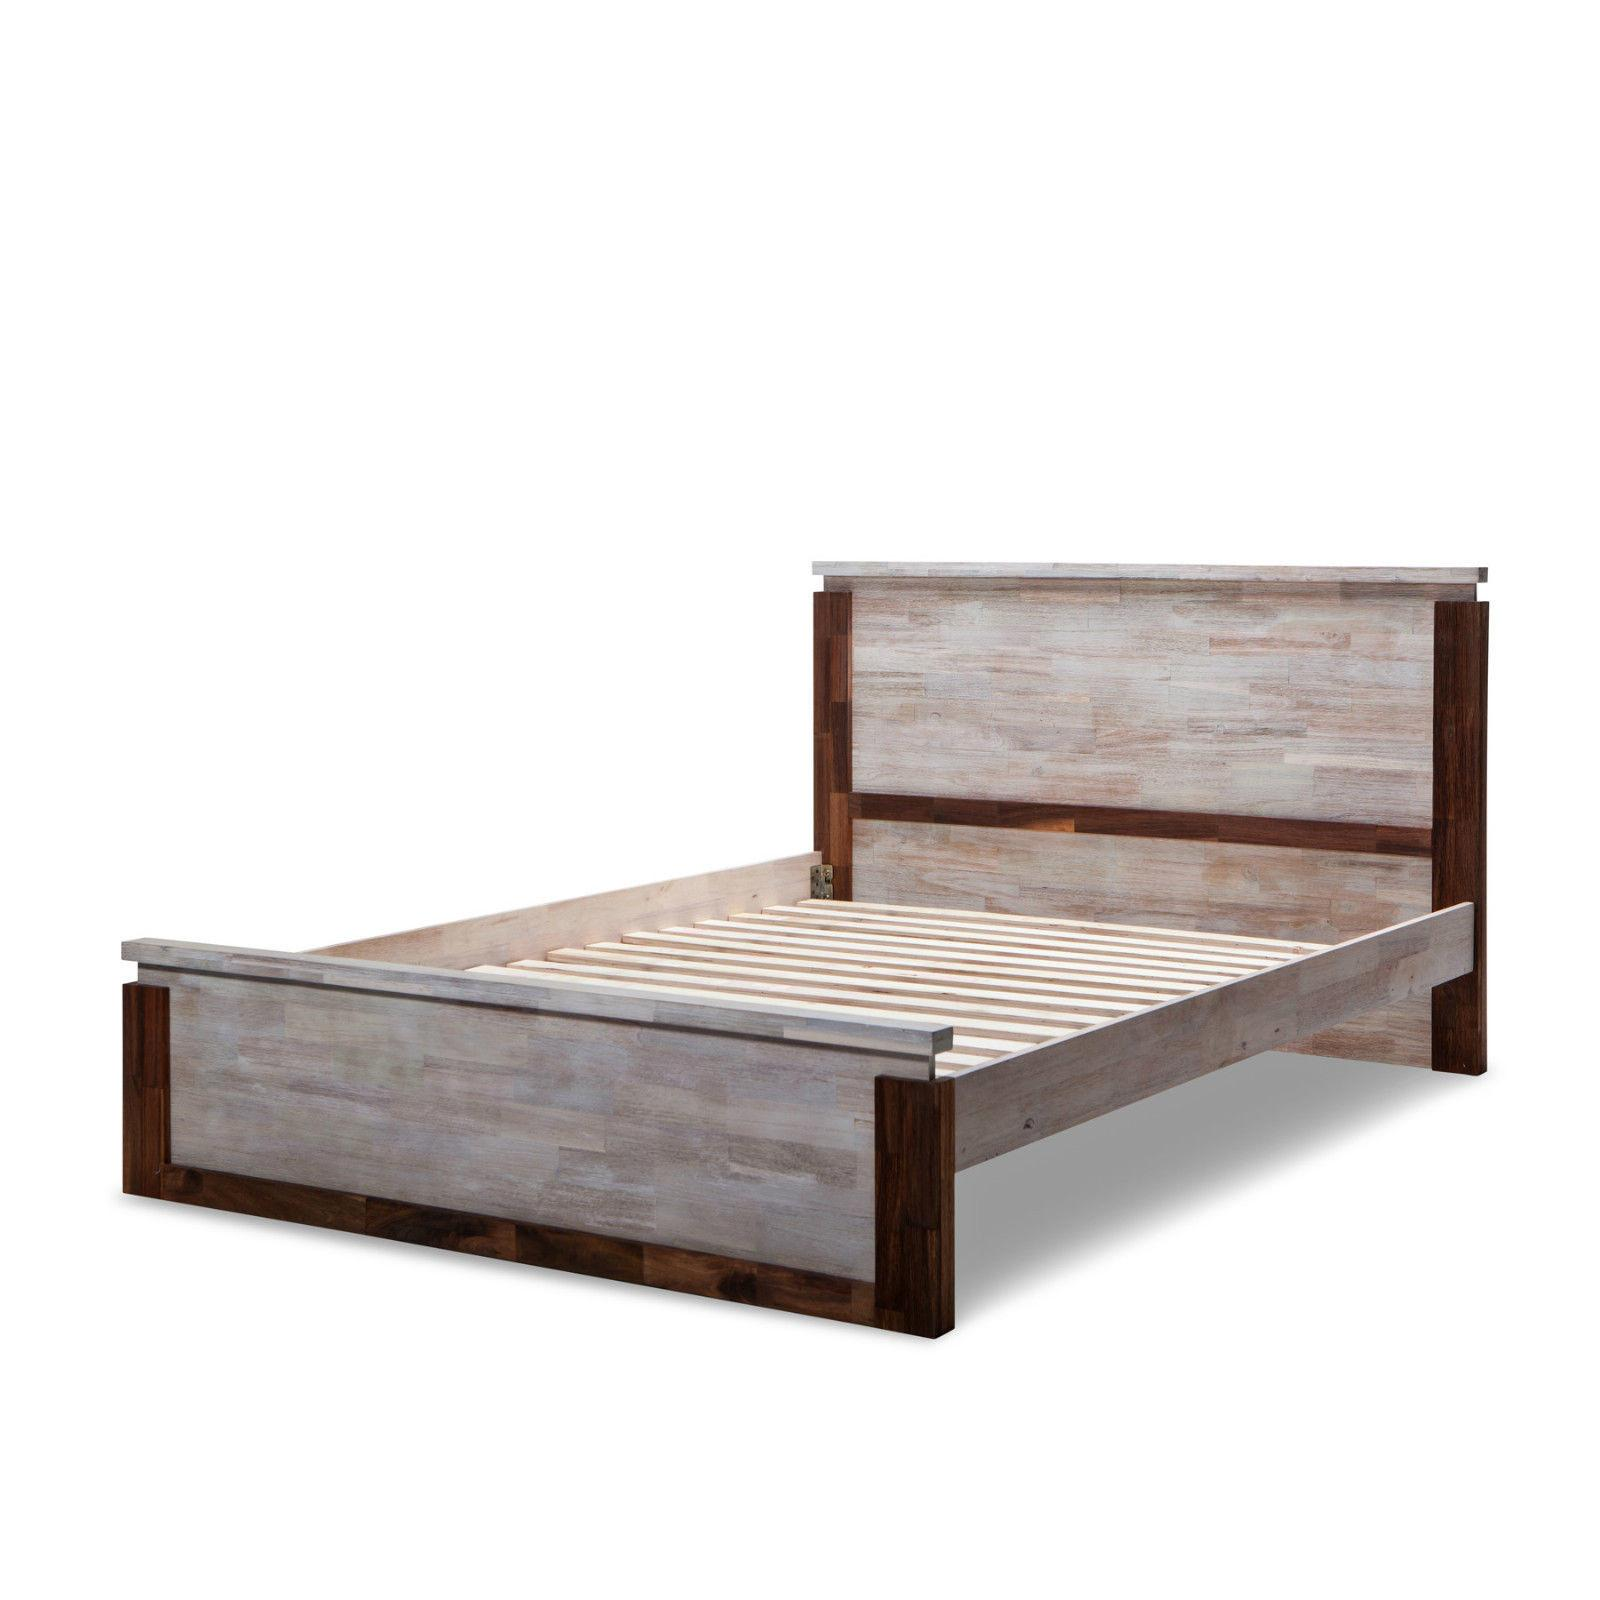 Catalina Brand New Solid Rubber Wood Rustic Contemporary